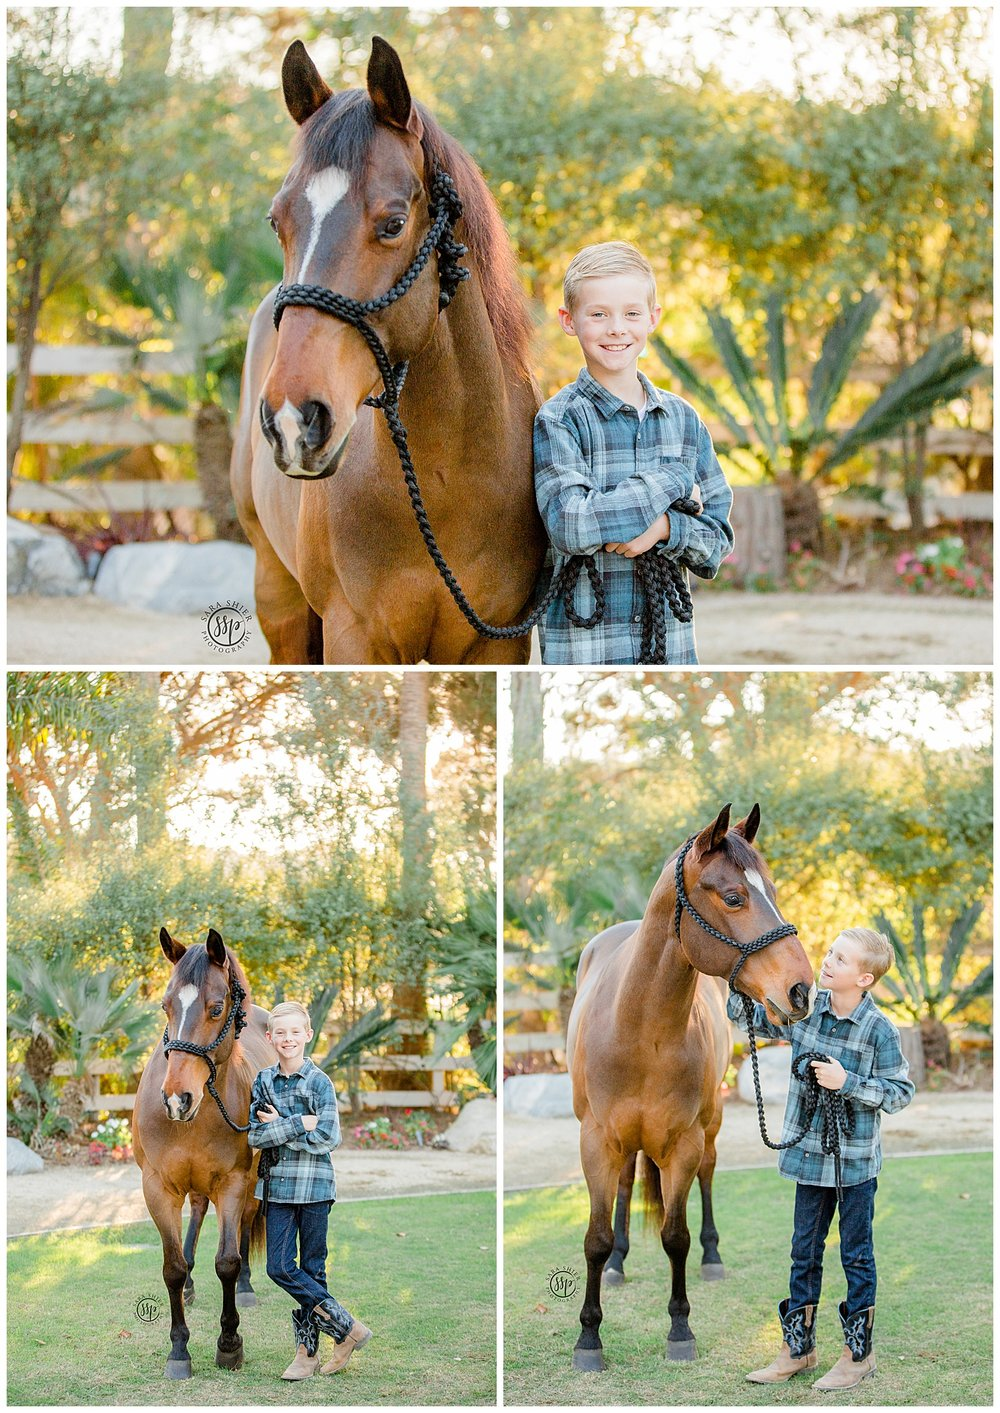 Black Background Horse Rider Equine Photographer Southern California Sara Shier Photography SoCal Equestrian Cowgirl_0446.jpg